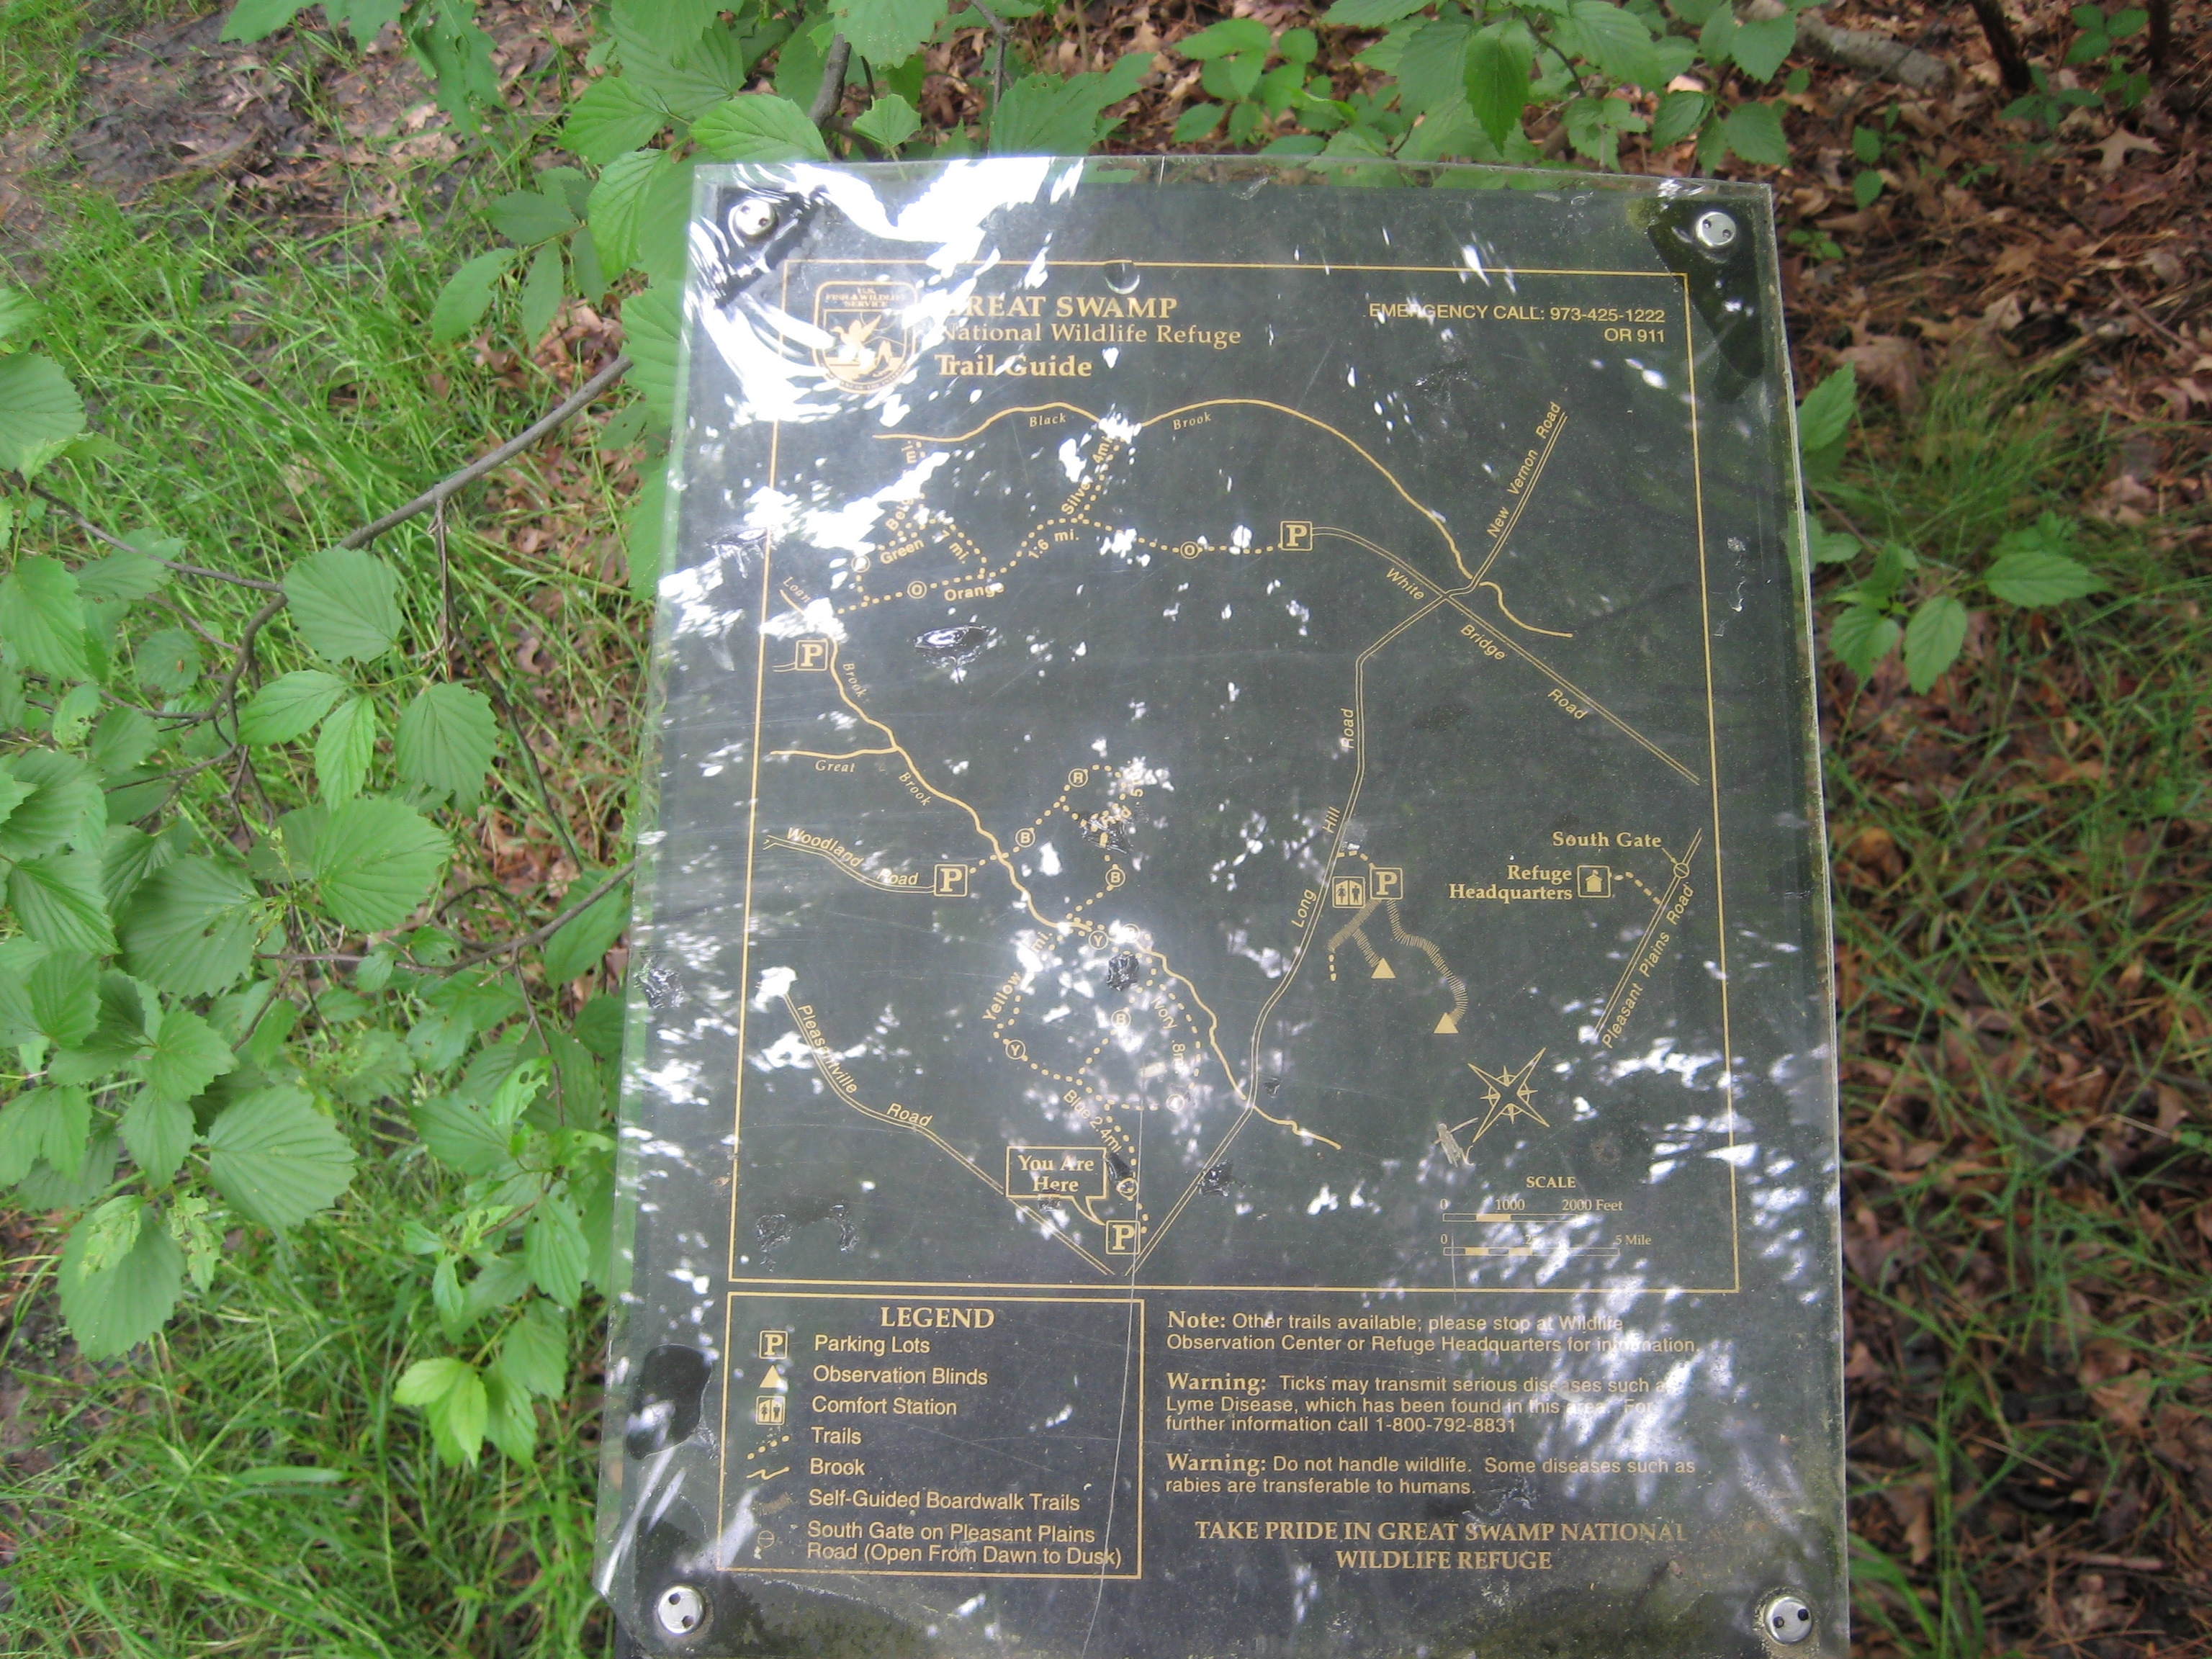 Great Swamp National Wildlife Refuge - Trail Map